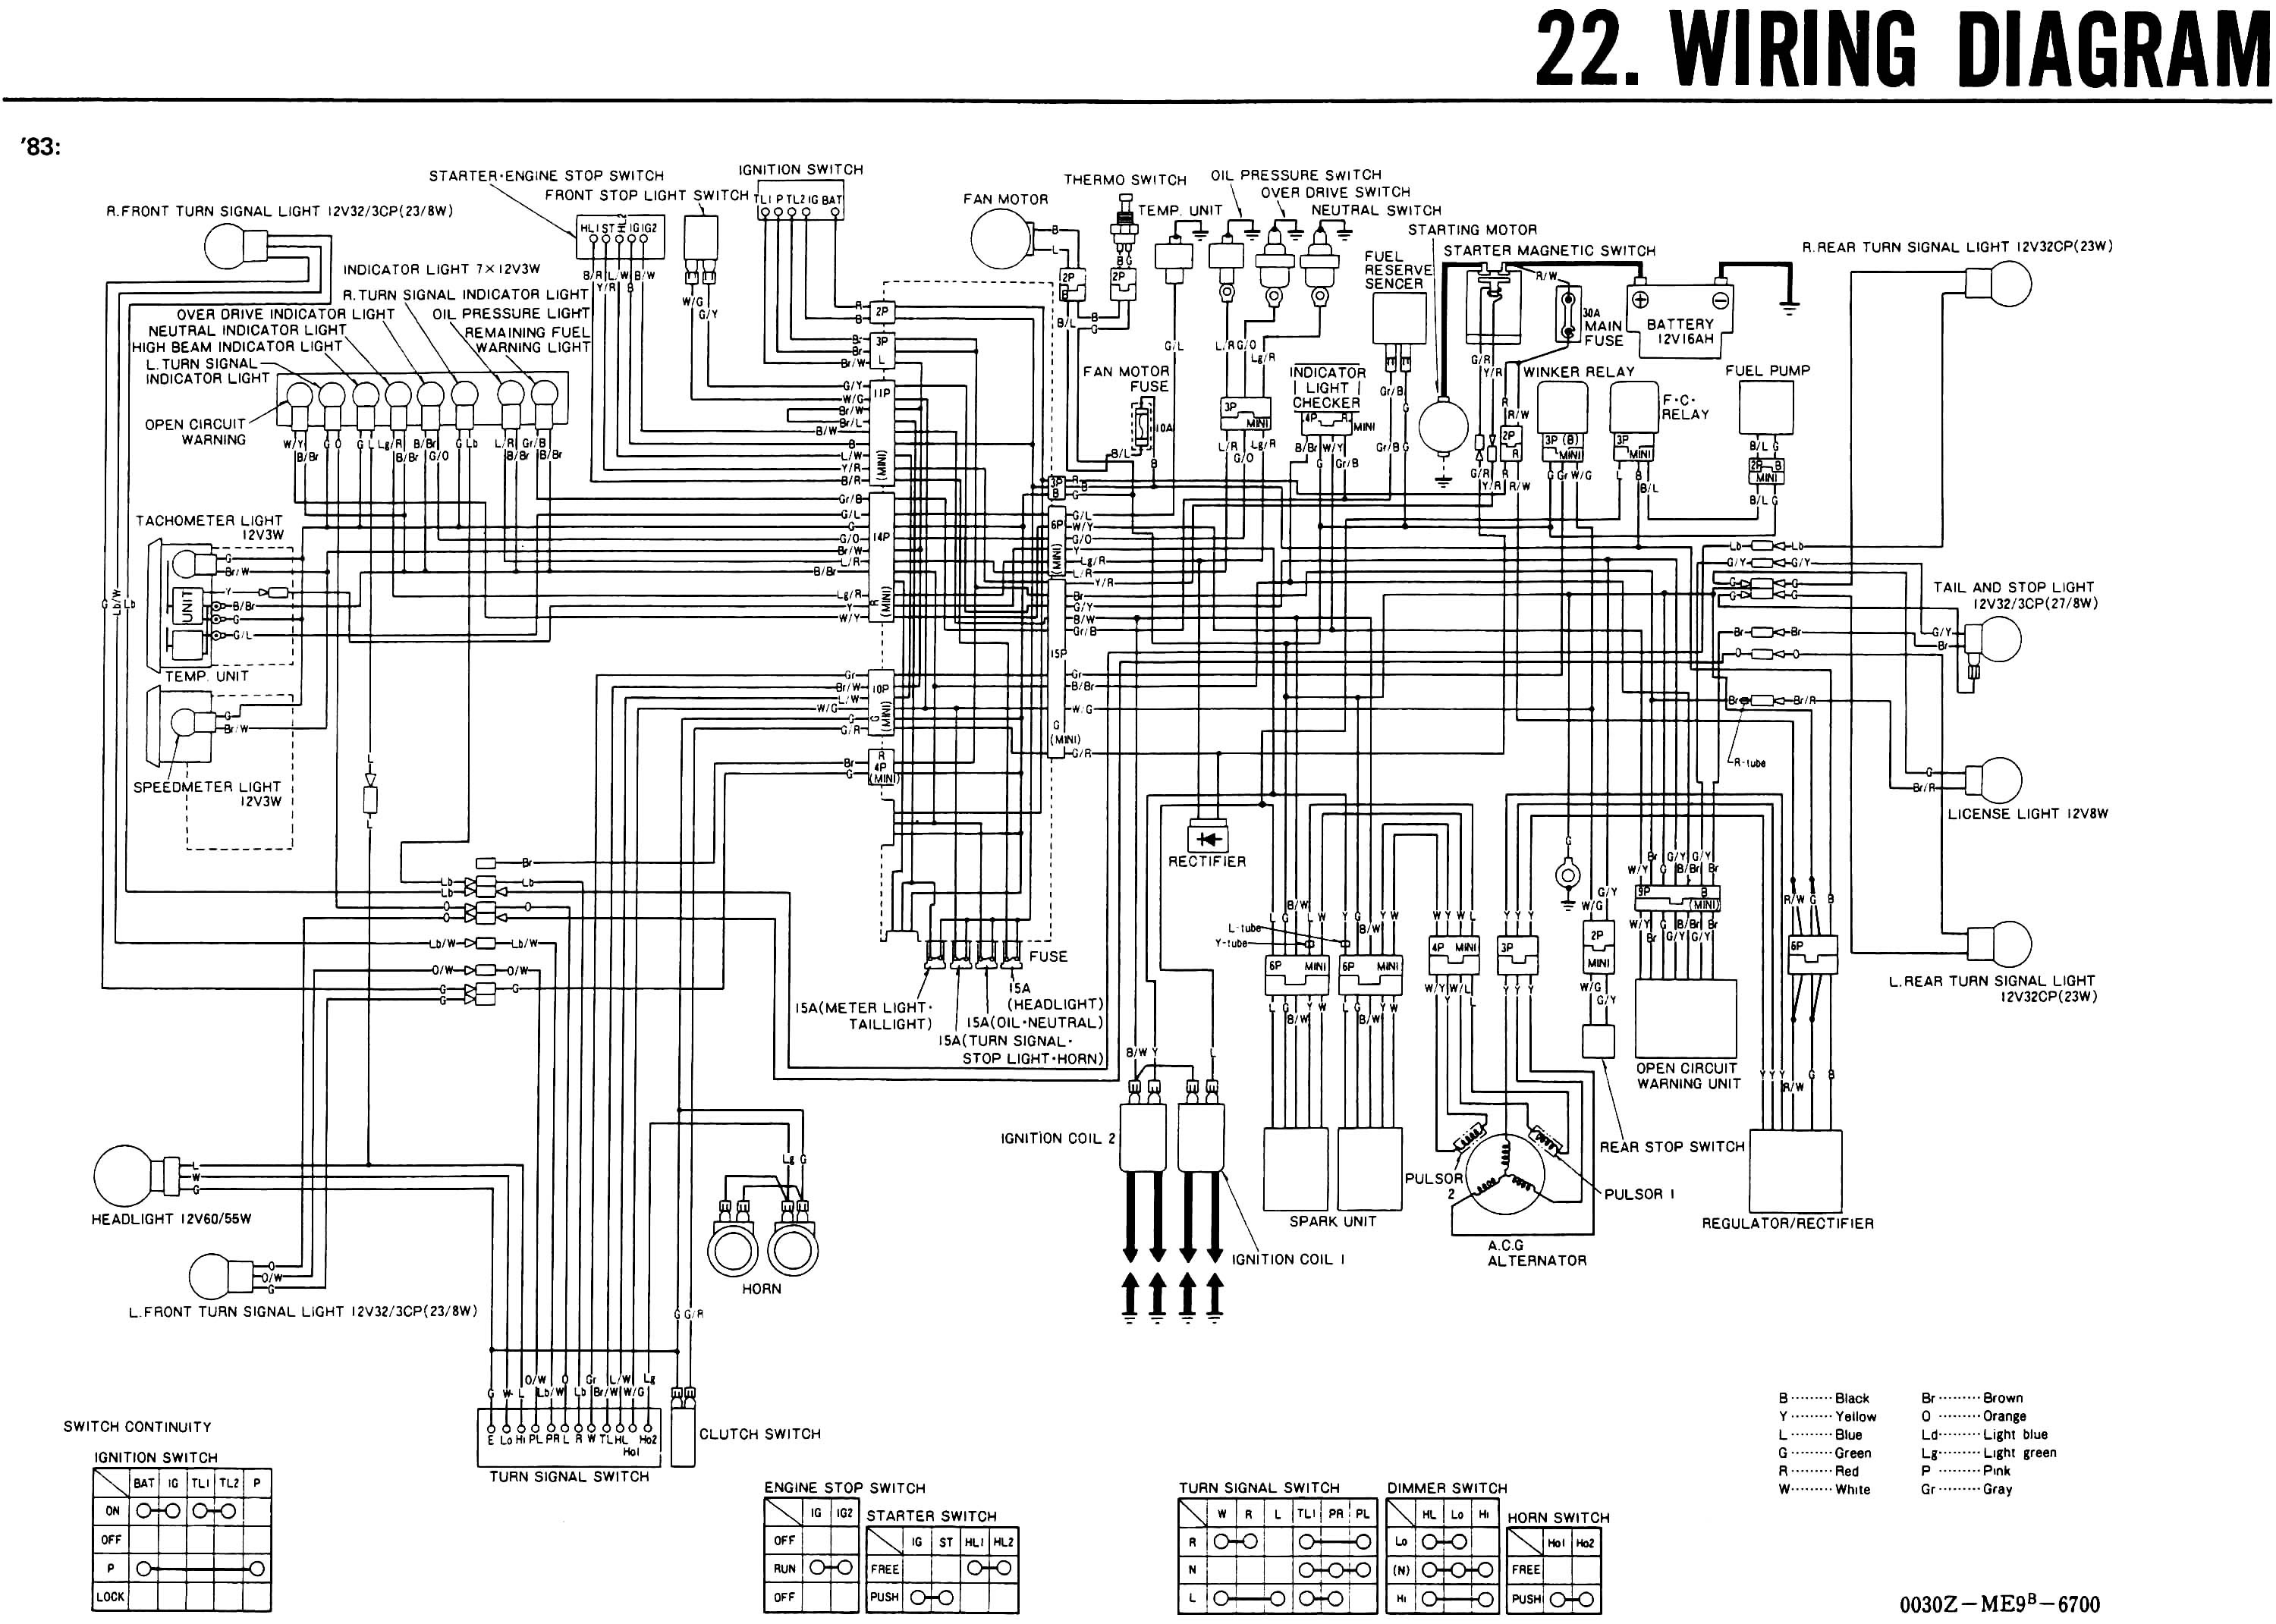 wiring diagrams for honda shadow vt1100